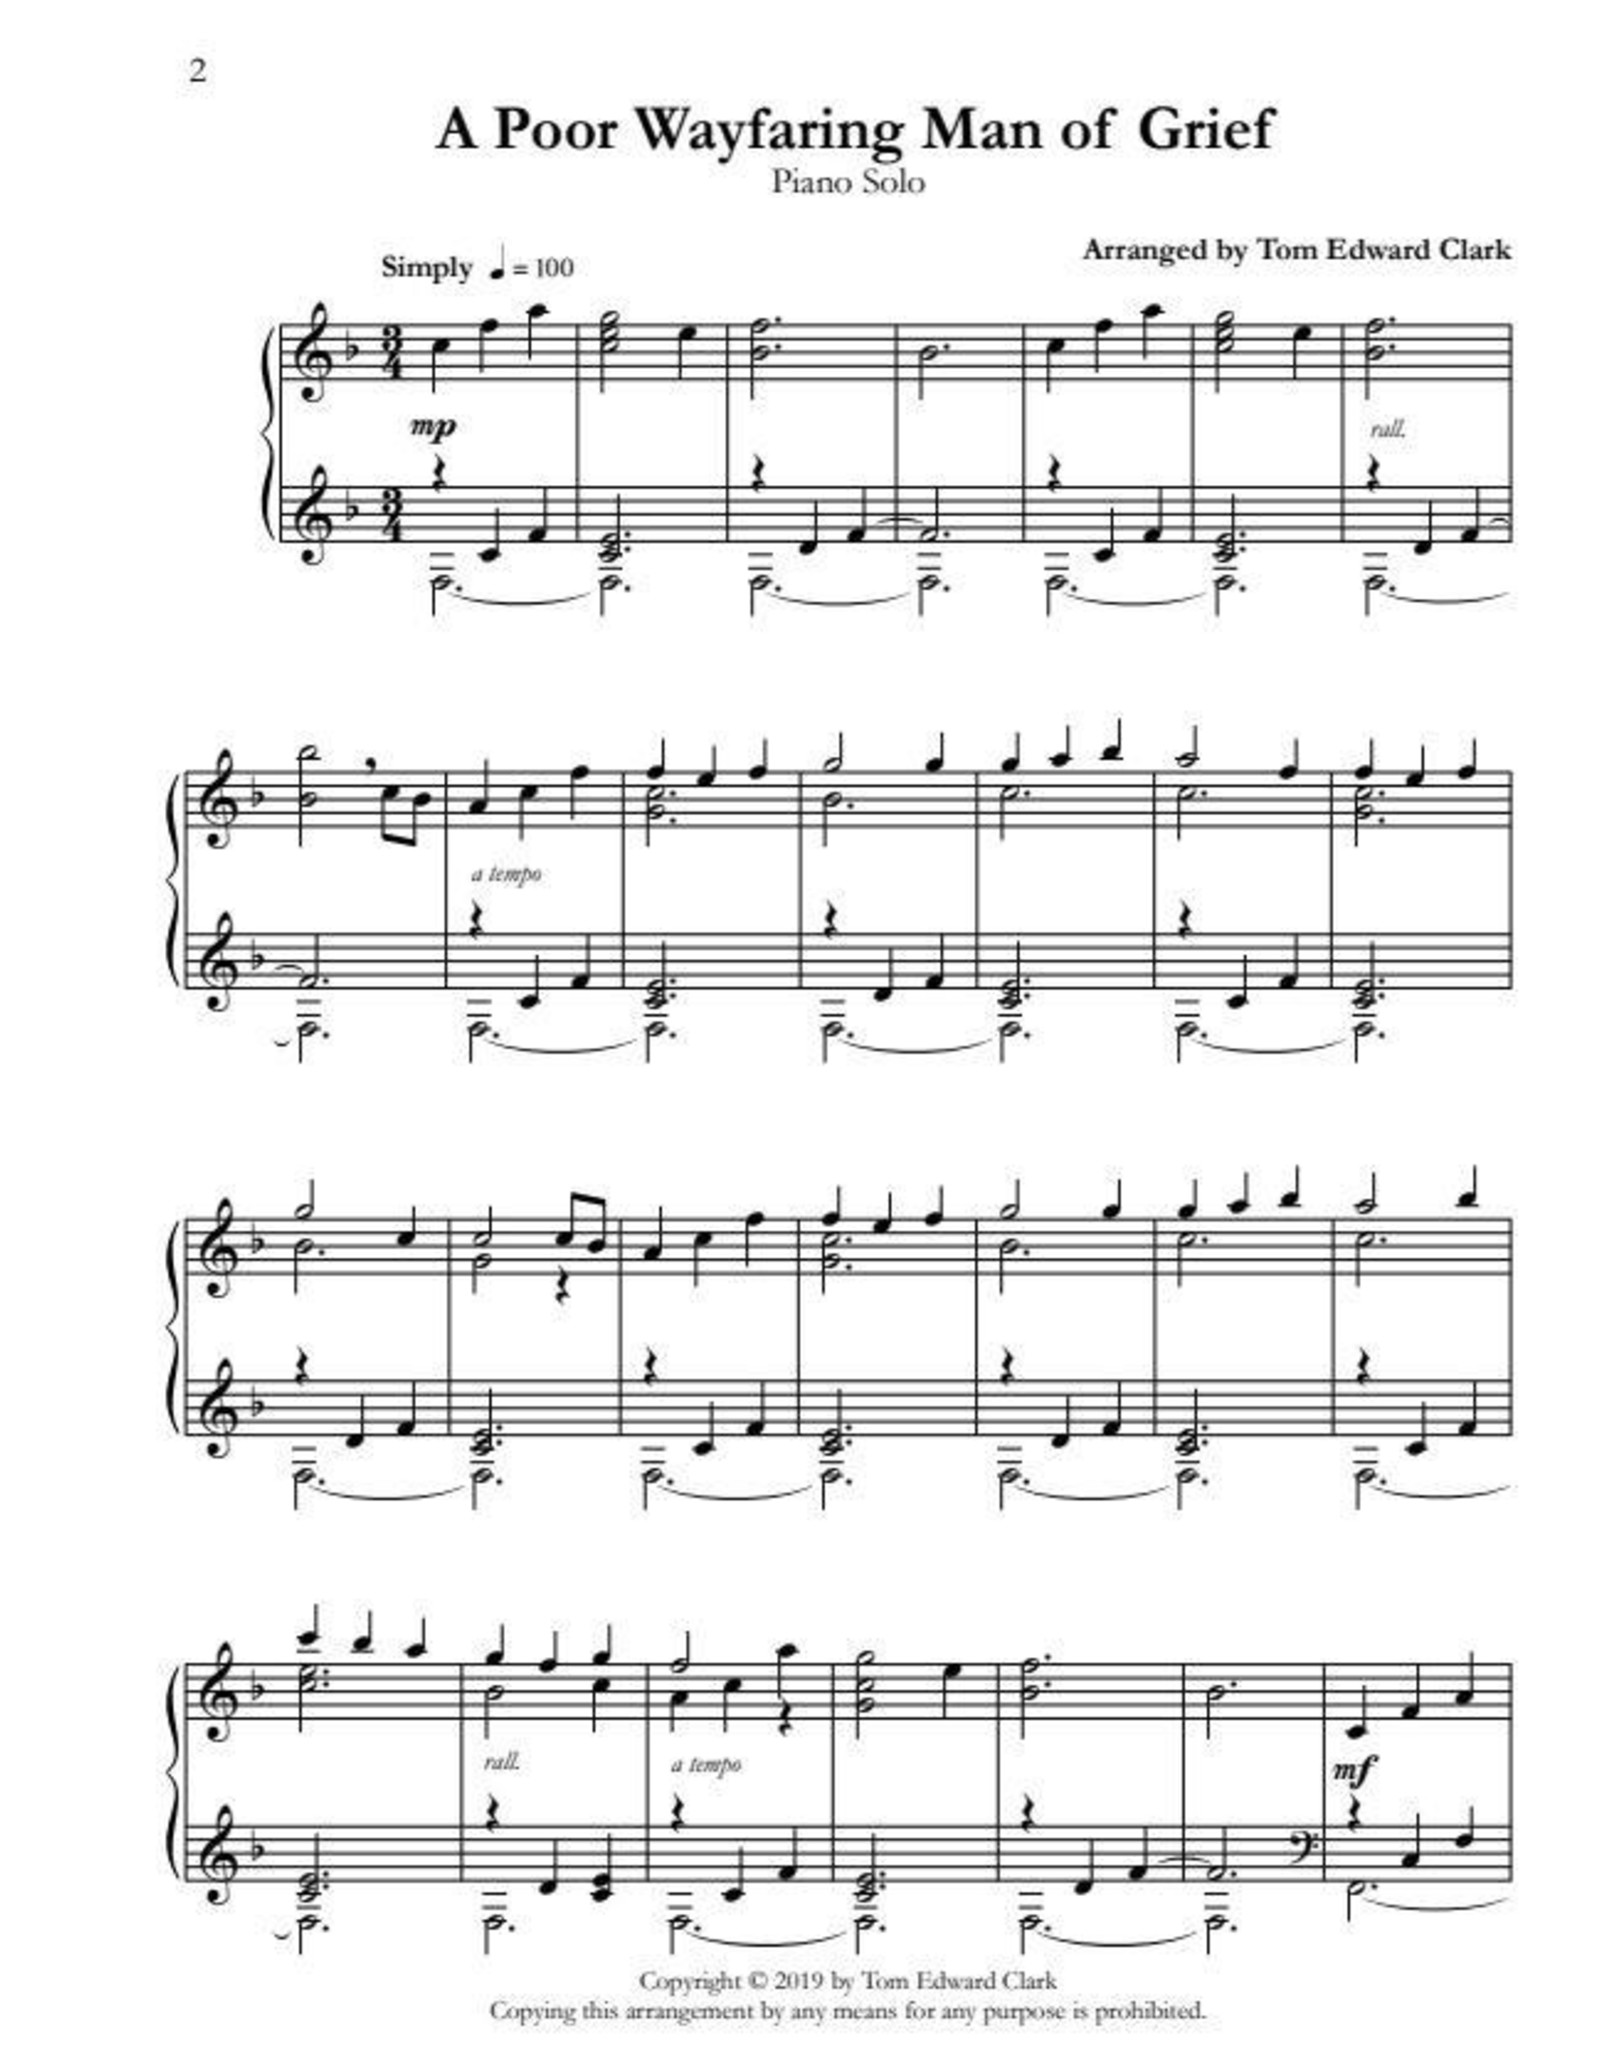 Tom Clark Music Peace - 12 LDS Piano Solos for the Intermediate Pianist by Tom Edward Clark